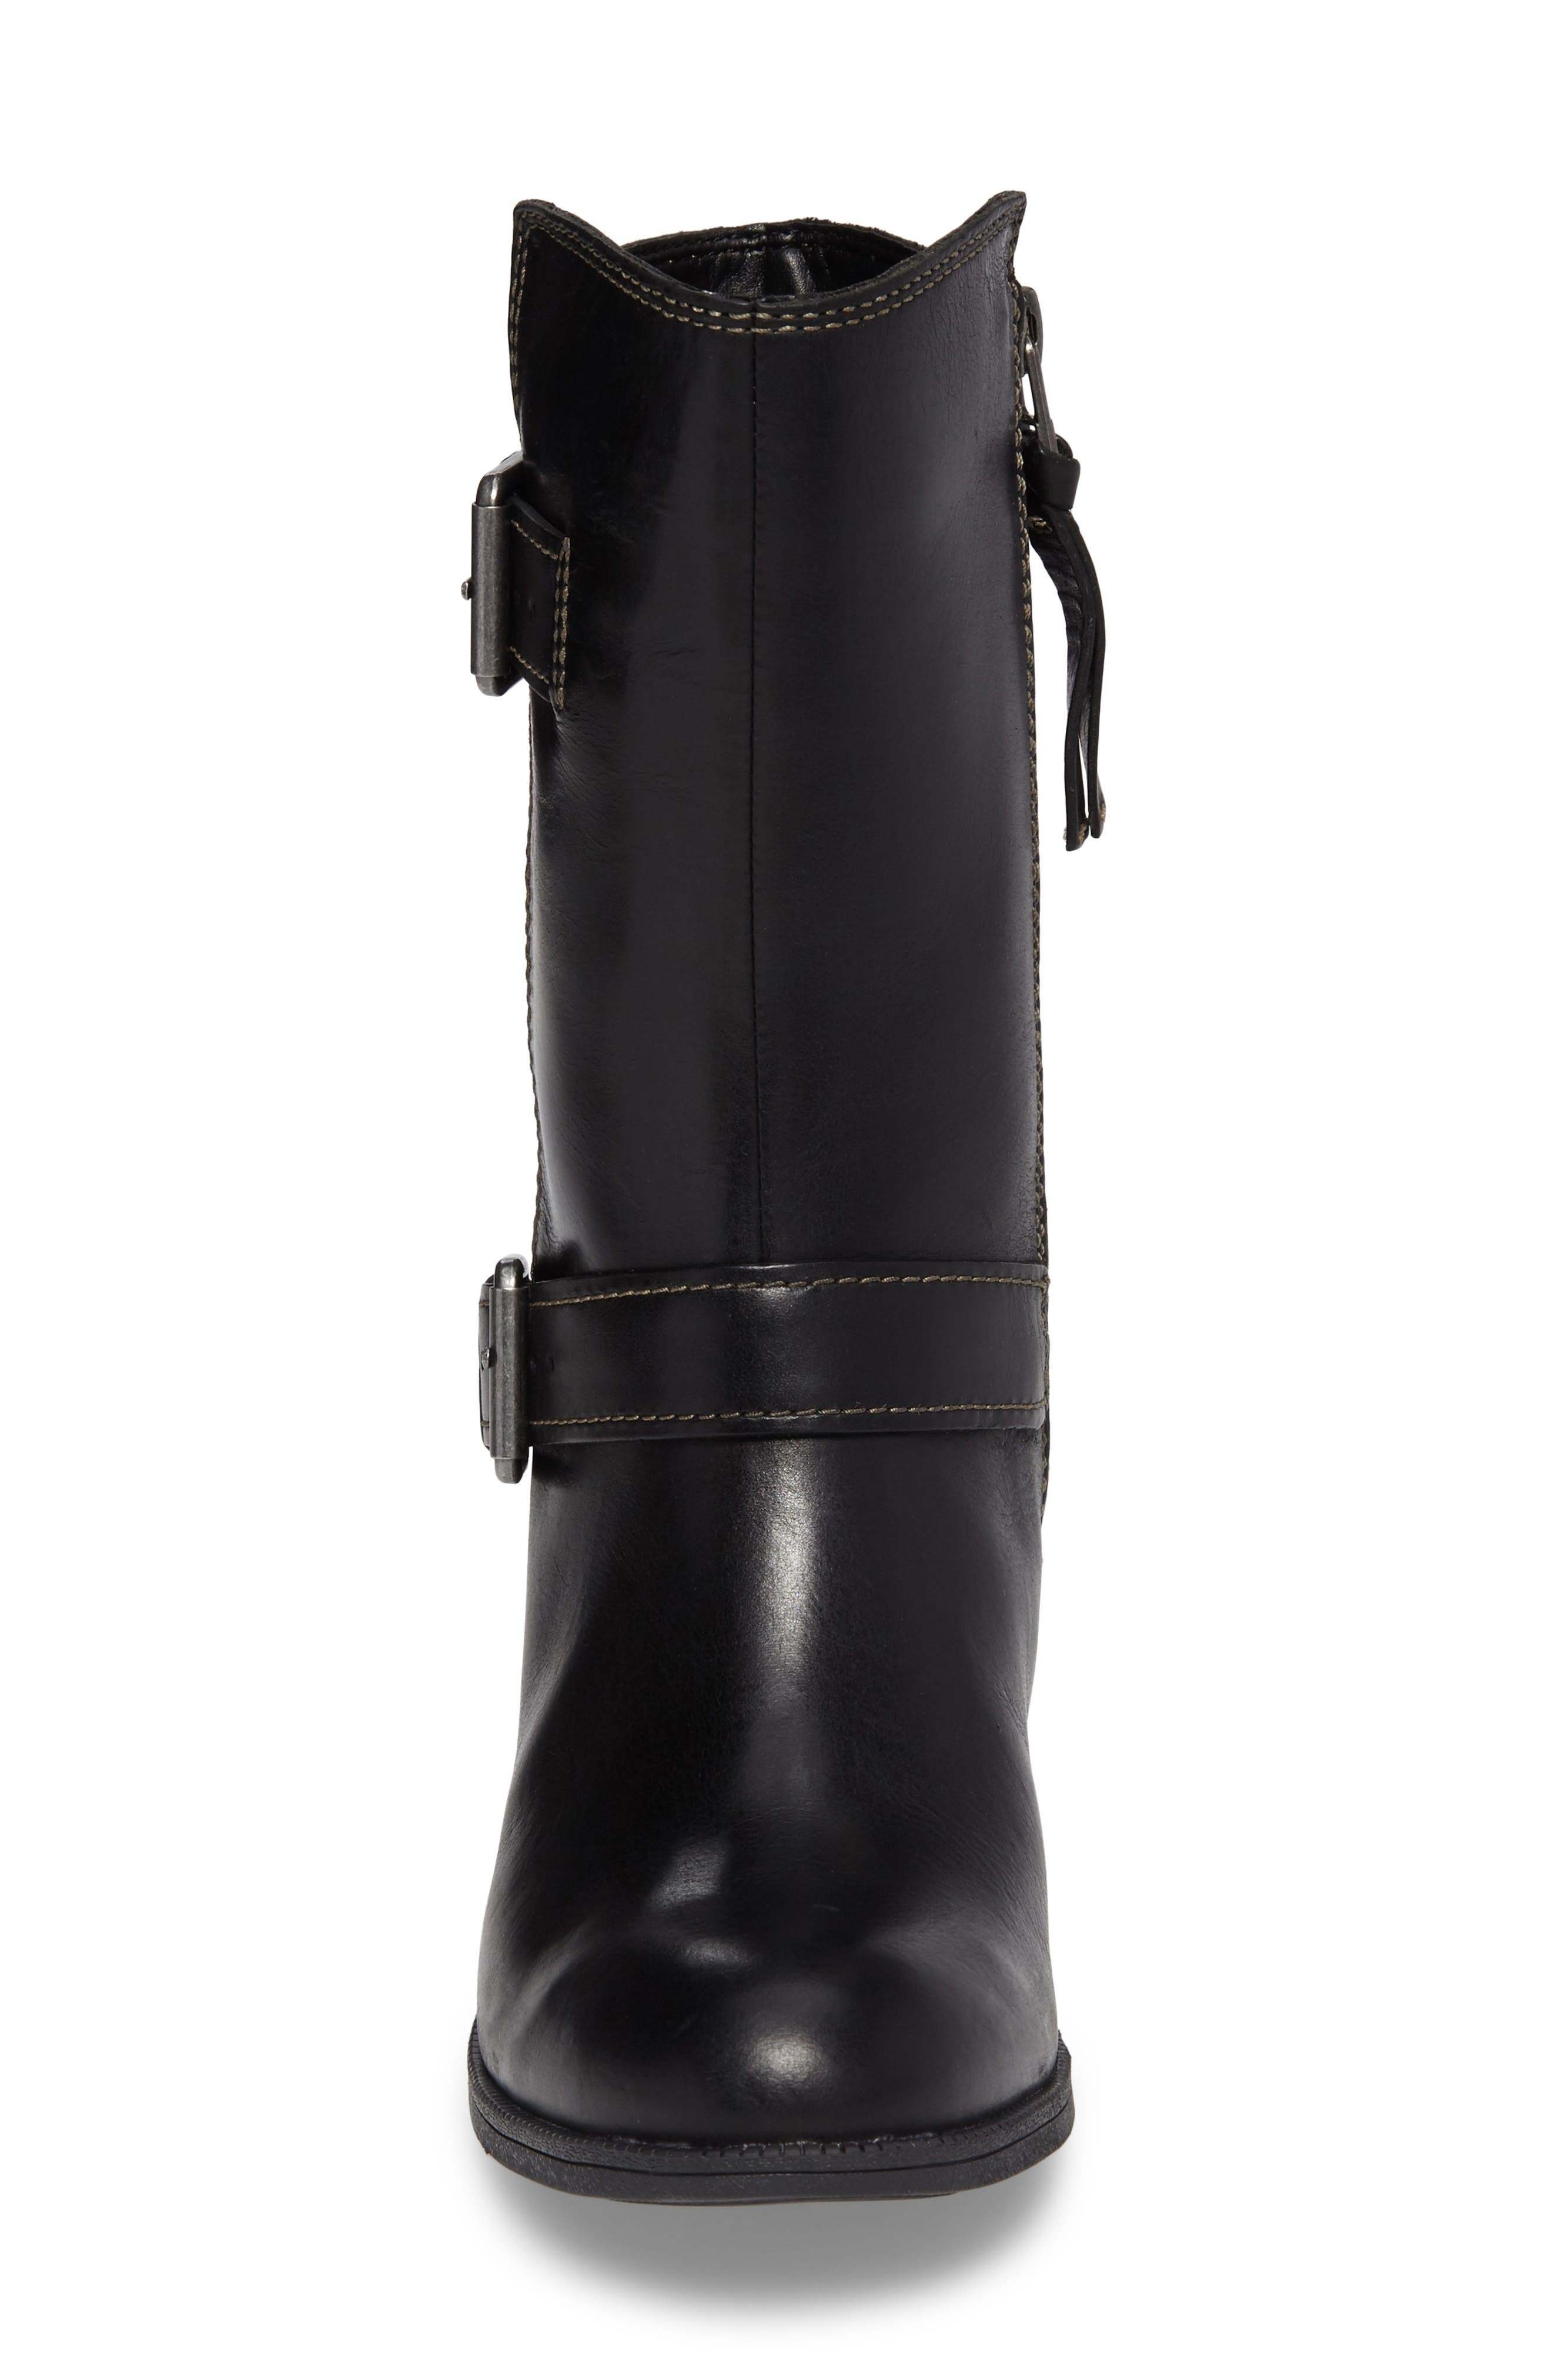 Maypearl Oasis Boot,                             Alternate thumbnail 4, color,                             Black Leather